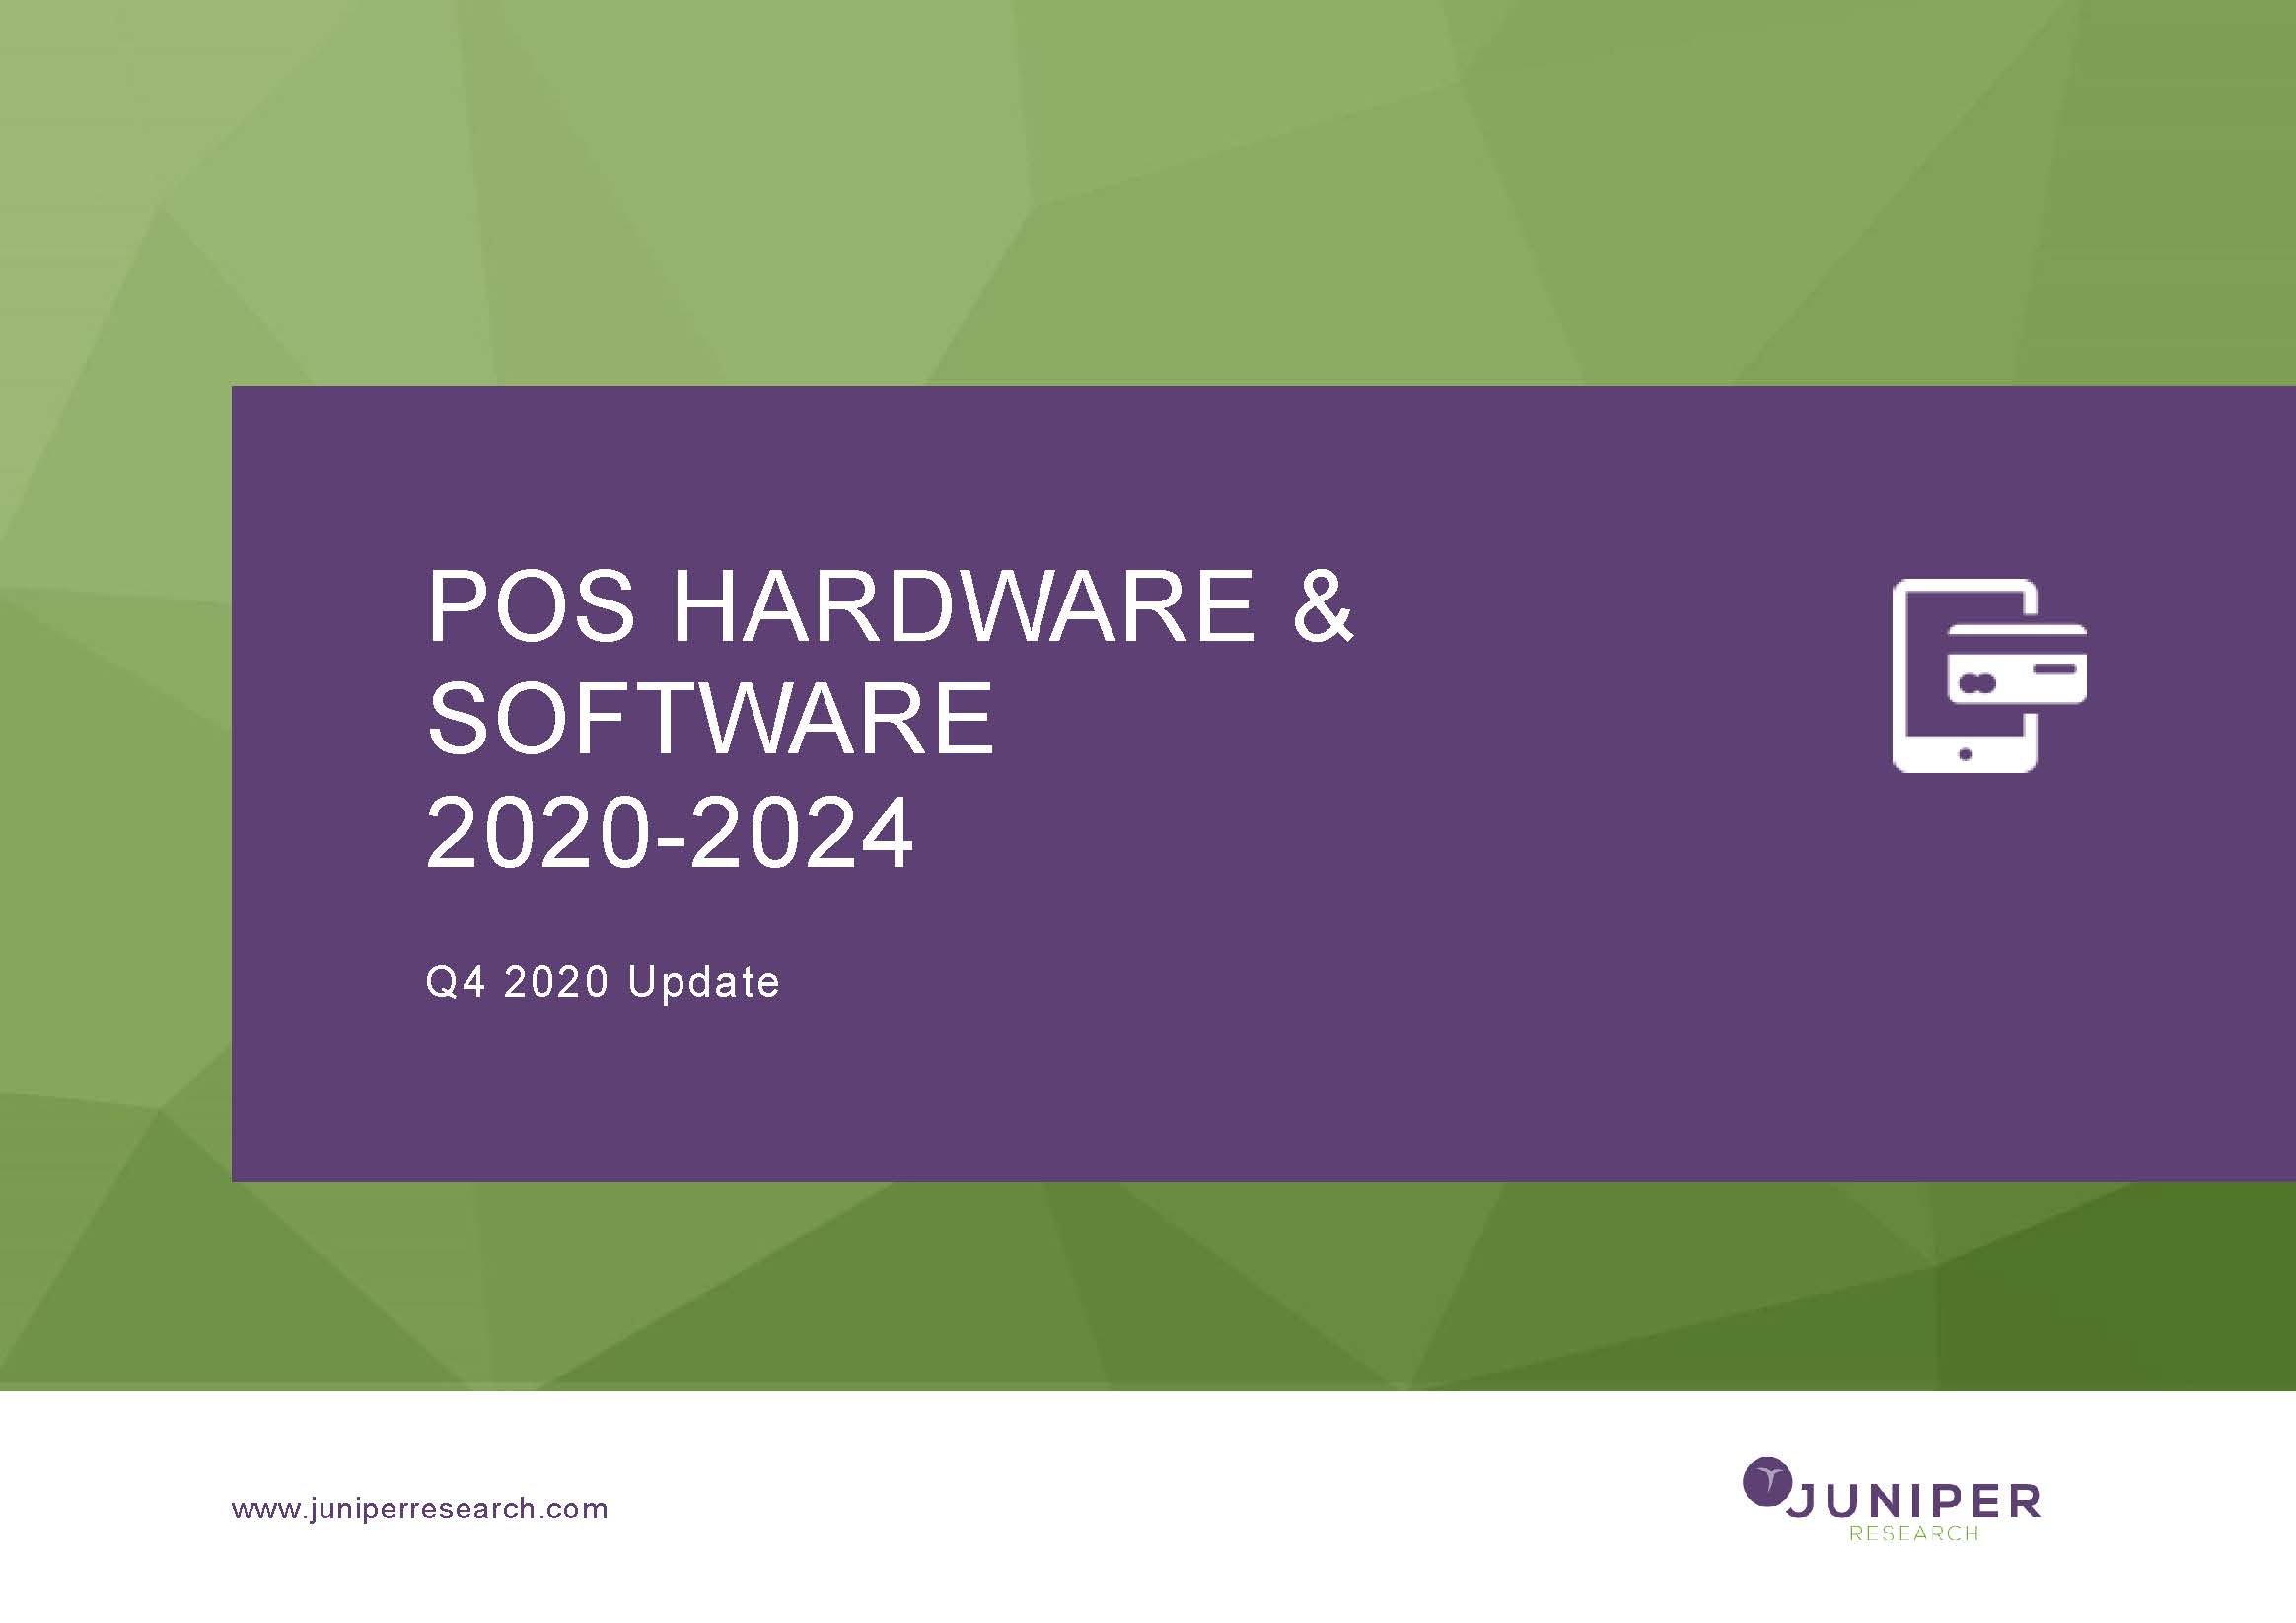 POS Hardware & Software - Q4 2020